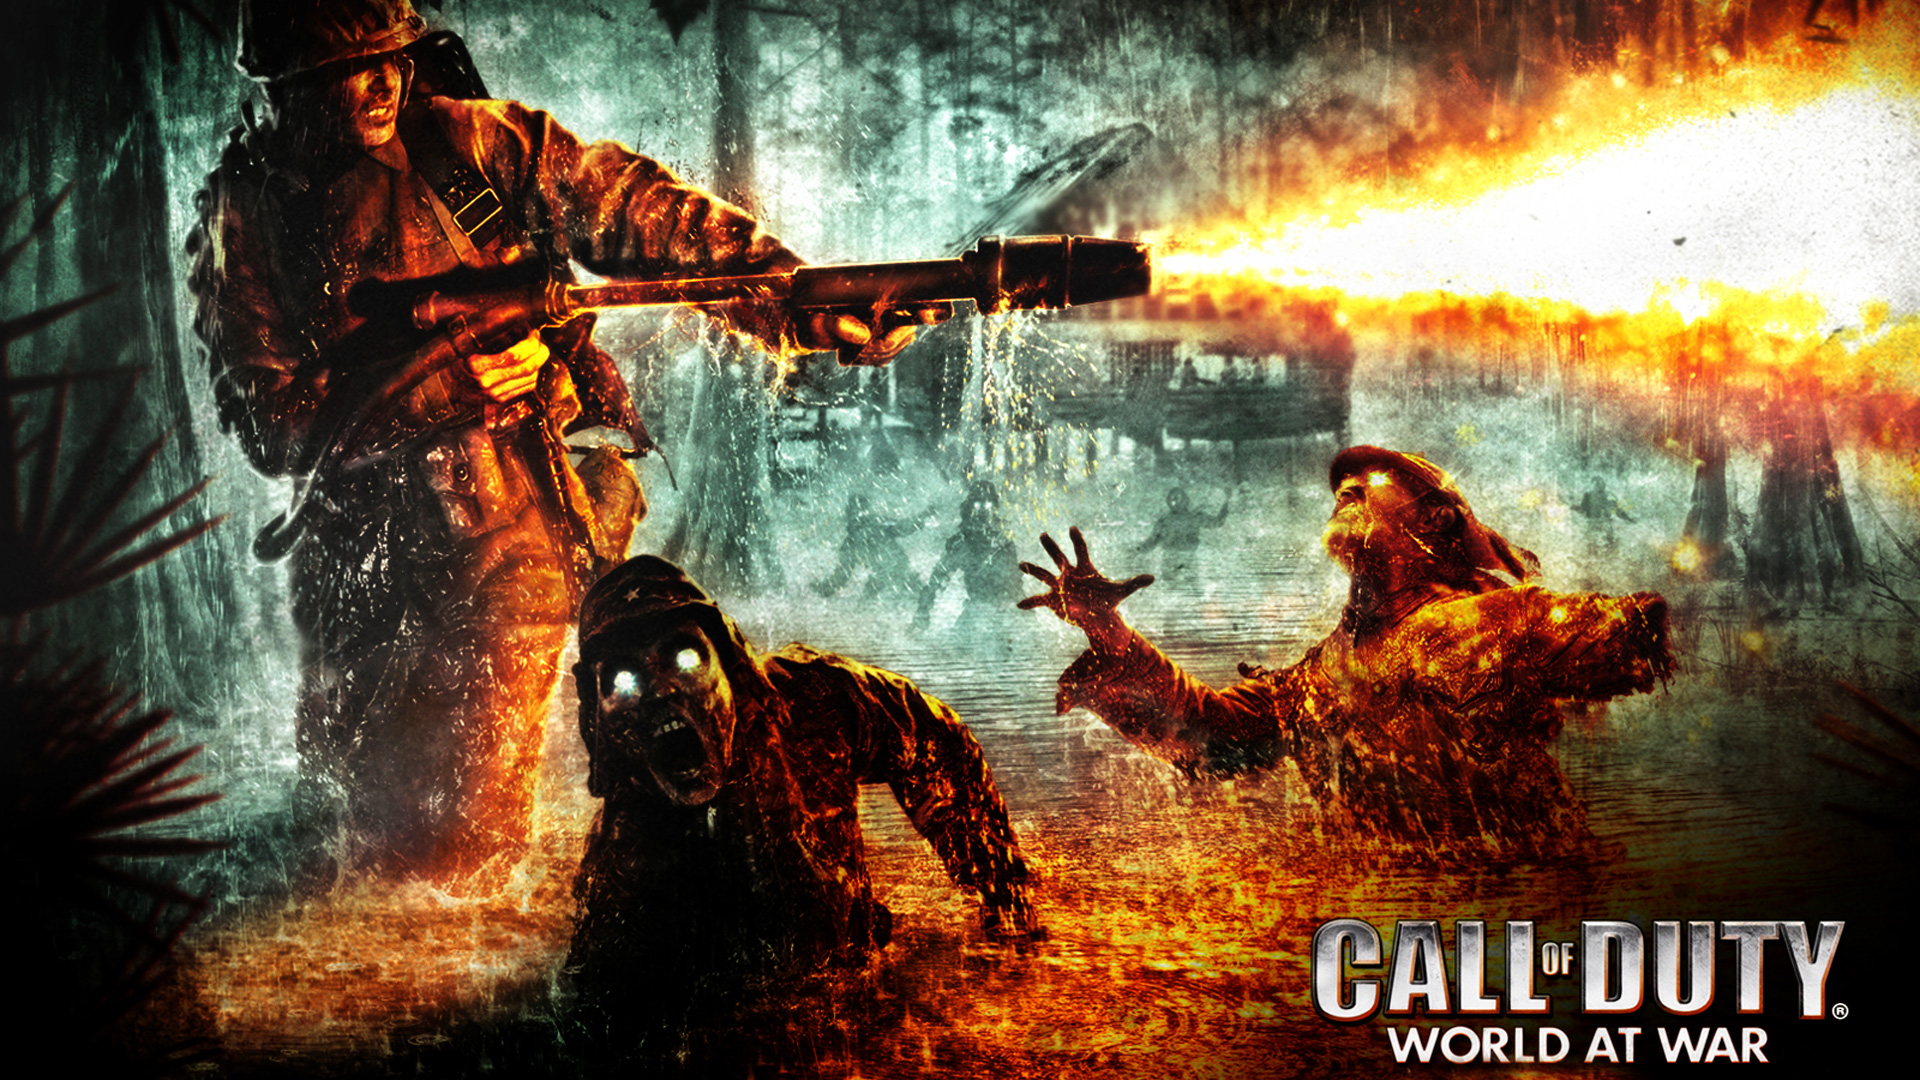 Call of Duty: World at War Wallpaper in 1920x1080